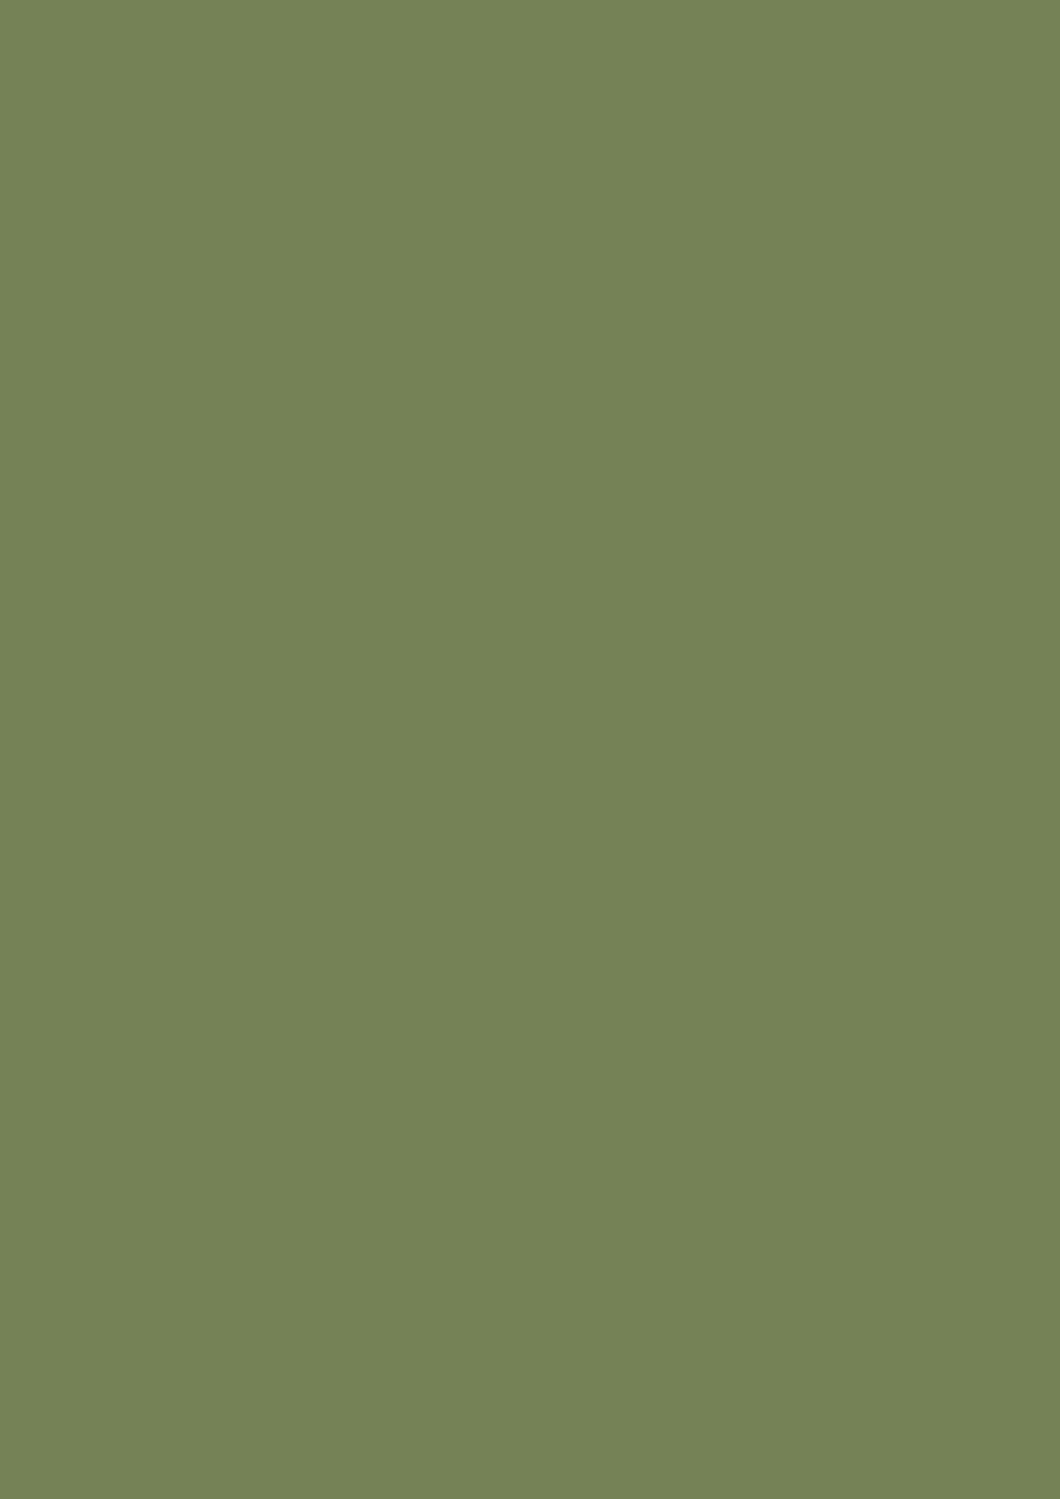 Sap Green No. W56